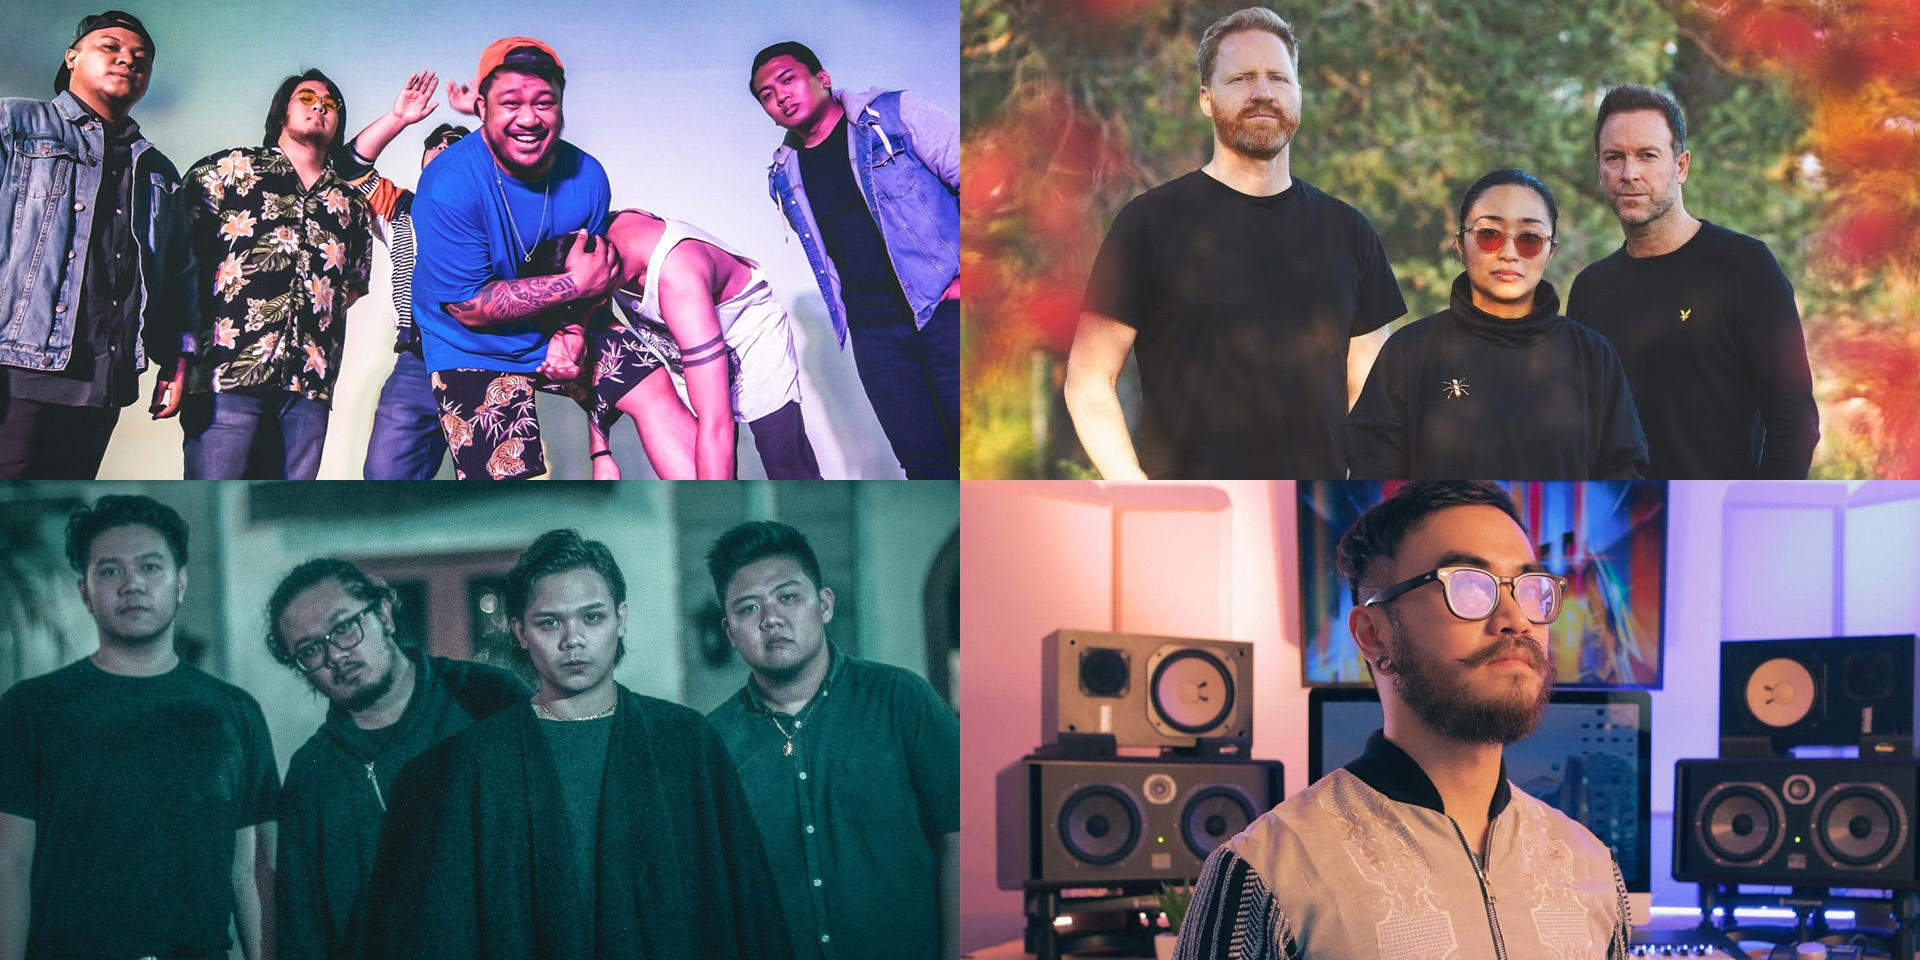 The Metro Fantastic, Armi Millare & D'Sound, St. Wolf, DJ Joey Santos, and more release new music